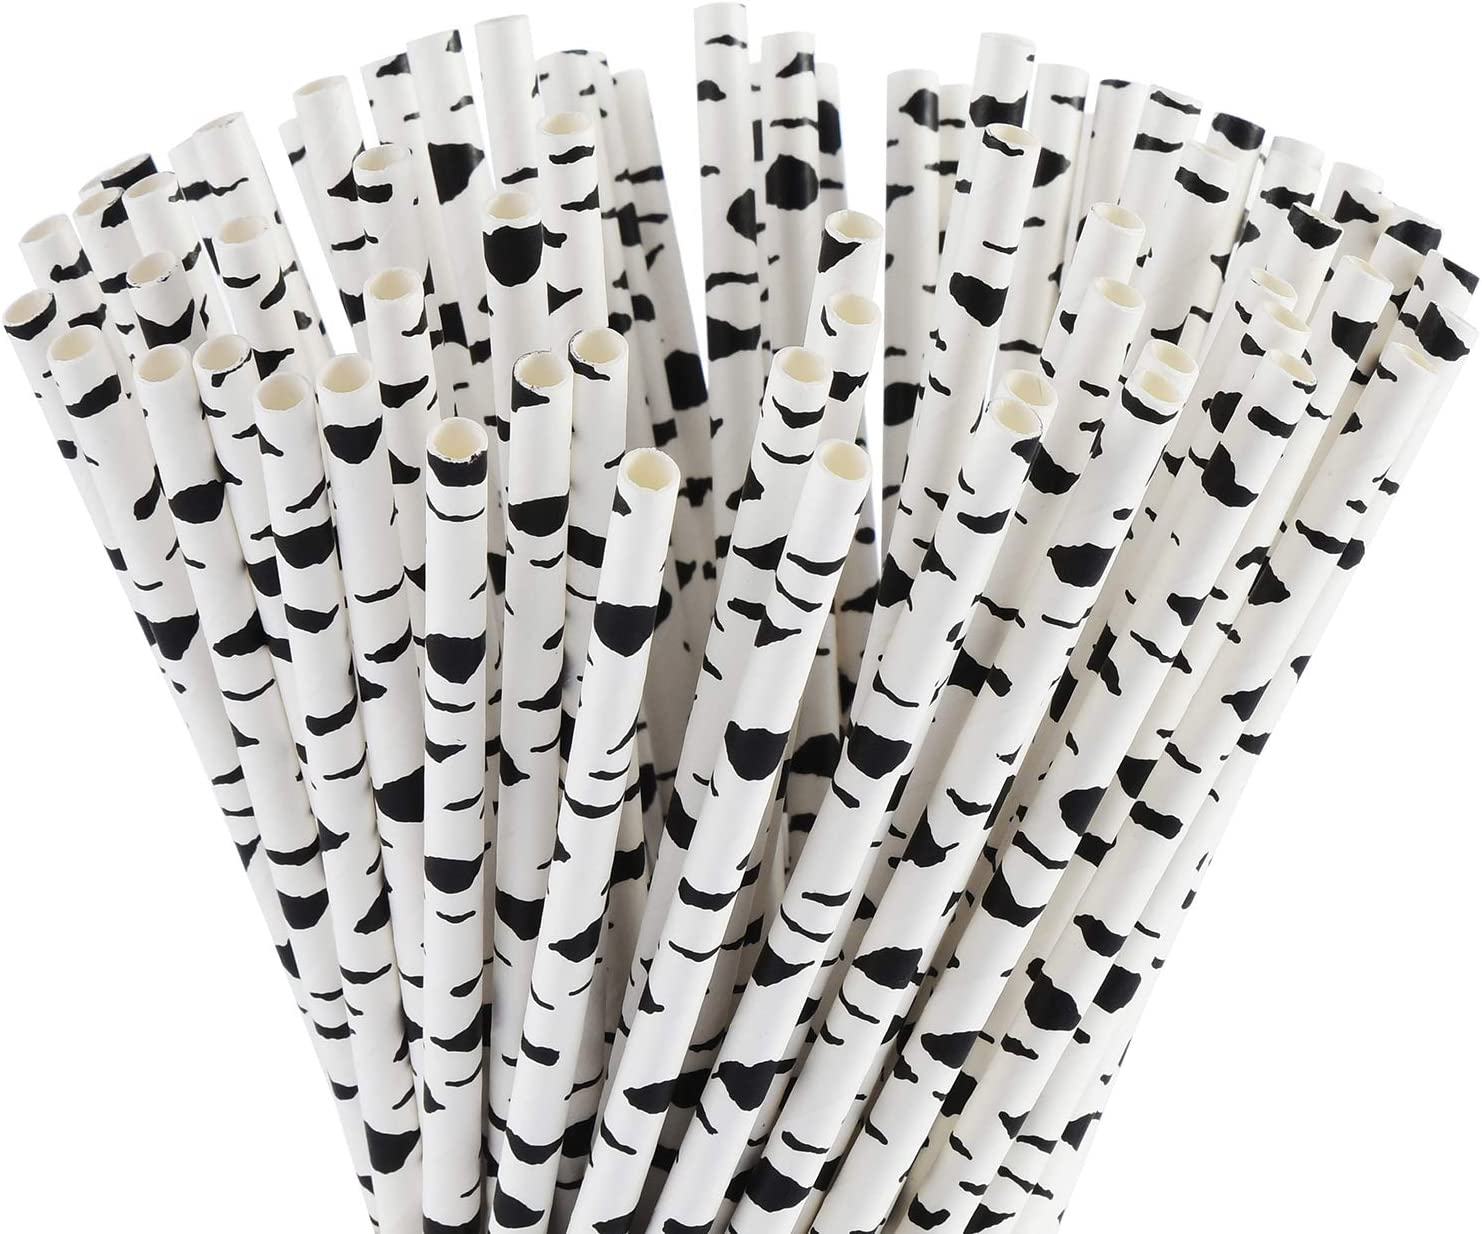 ALINK Biodegradable Cow Paper Straws, 100 Black White Birch Straws for Kids, Birthday/Farm Theme Party, Baby/Bridal Shower Decorations and Holiday